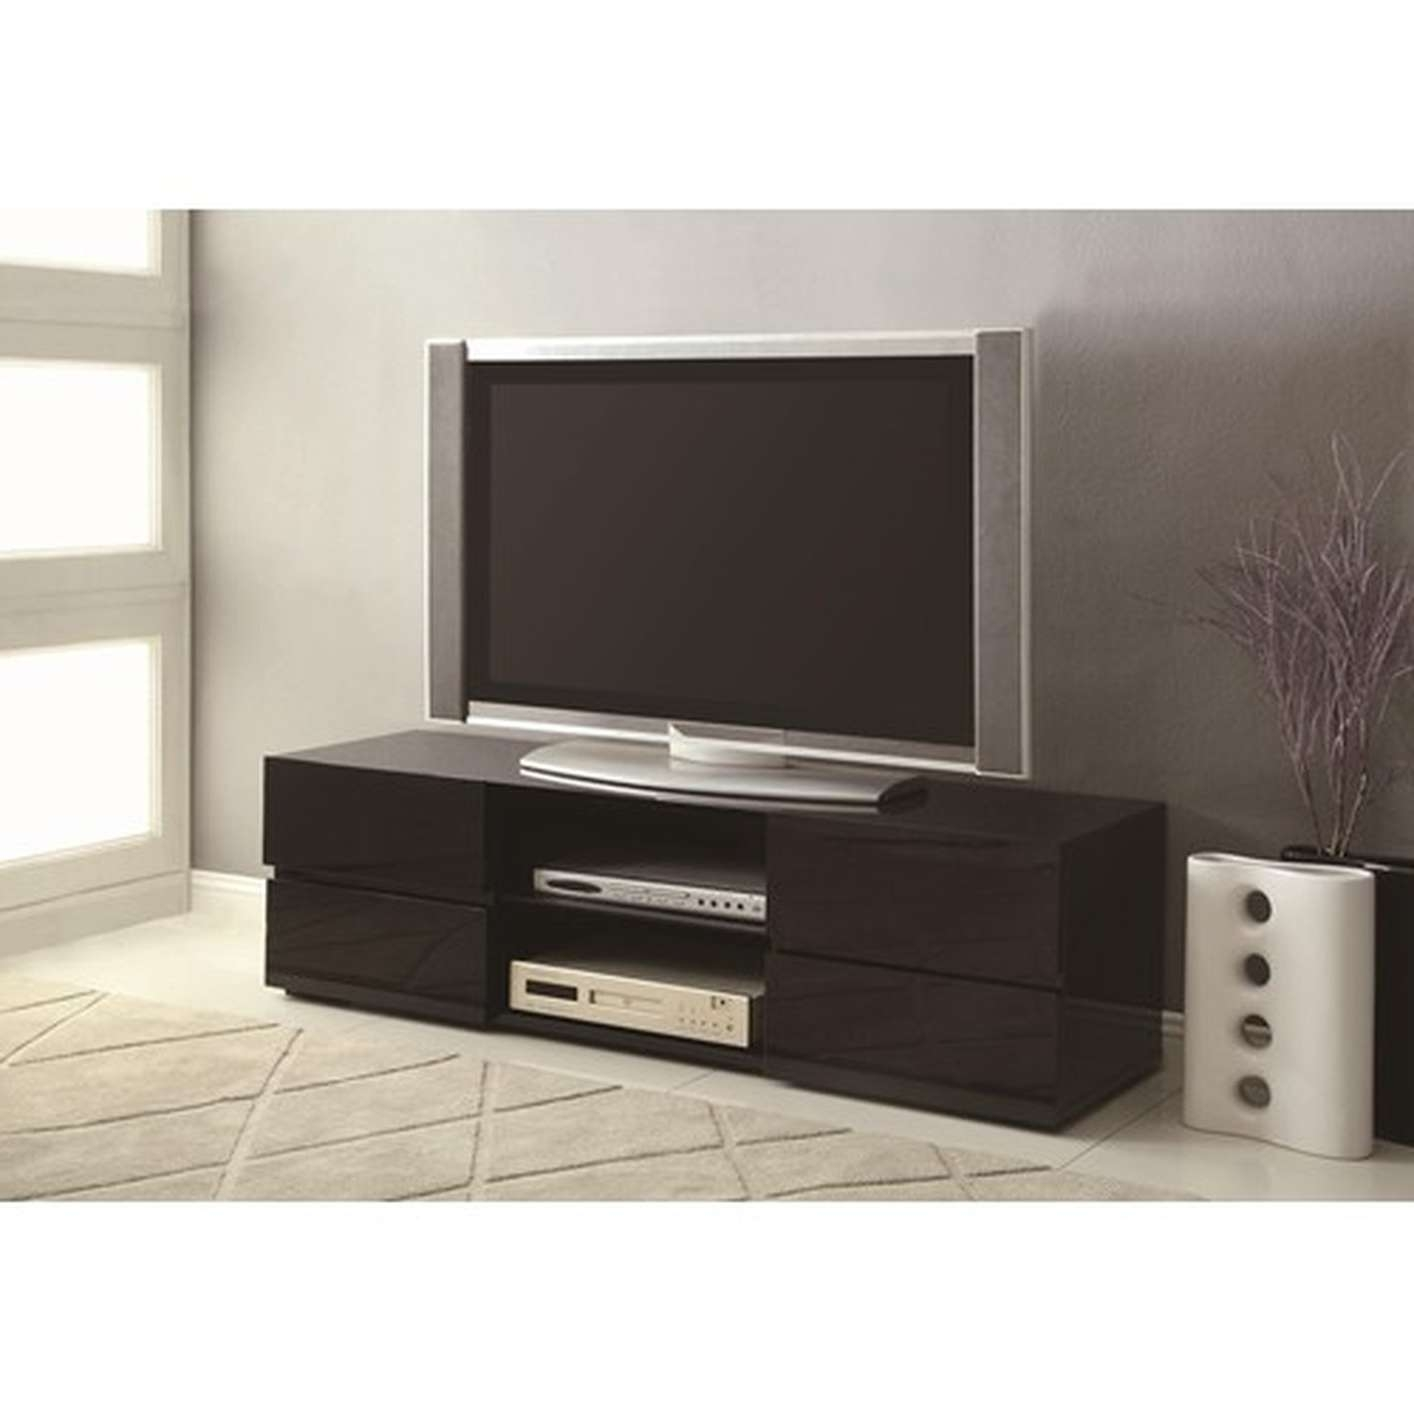 Modern Glossy Black Painted Solid Wood Tv Stand With 4 Drawers Inside Solid Wood Black Tv Stands (View 3 of 15)